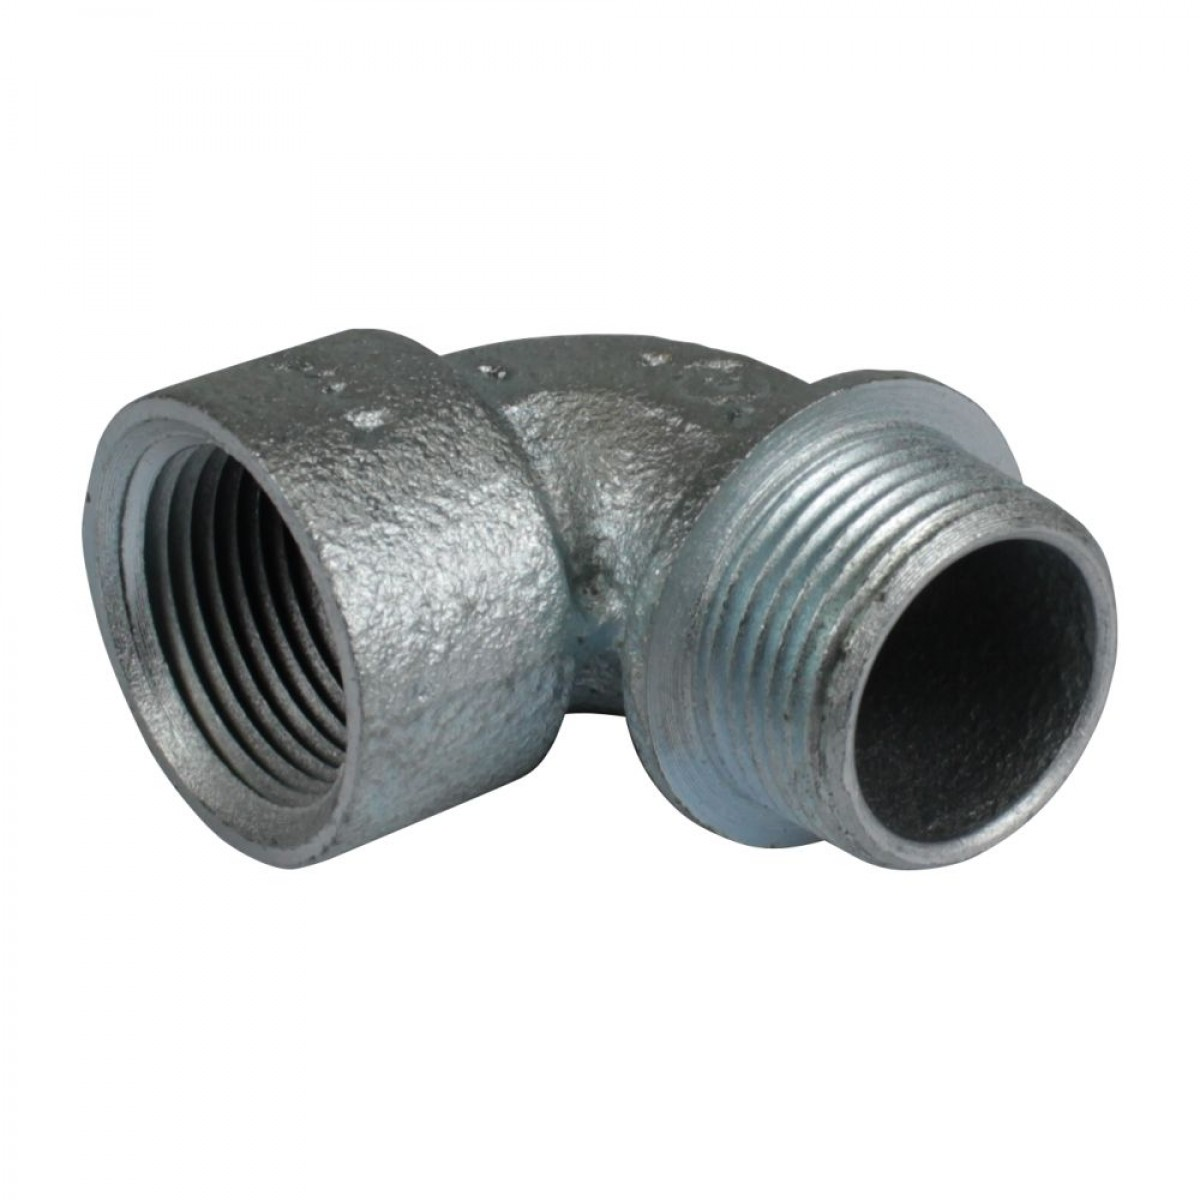 Malleable iron ° angle threaded short elbows rigid